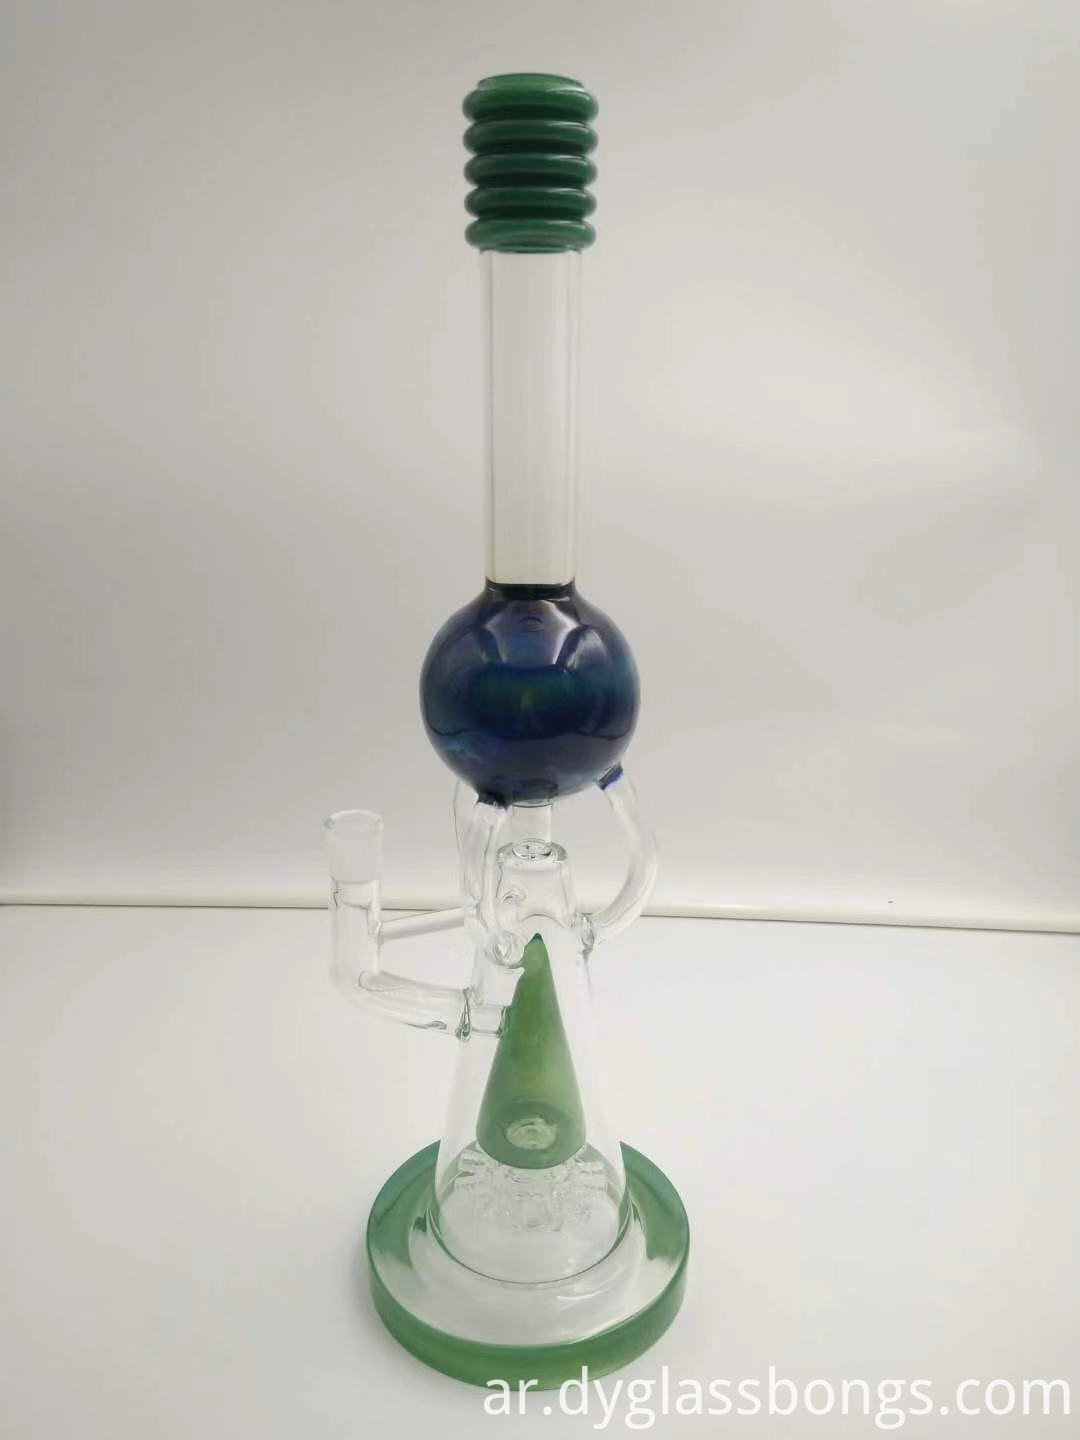 unbreakable glass bong for sale